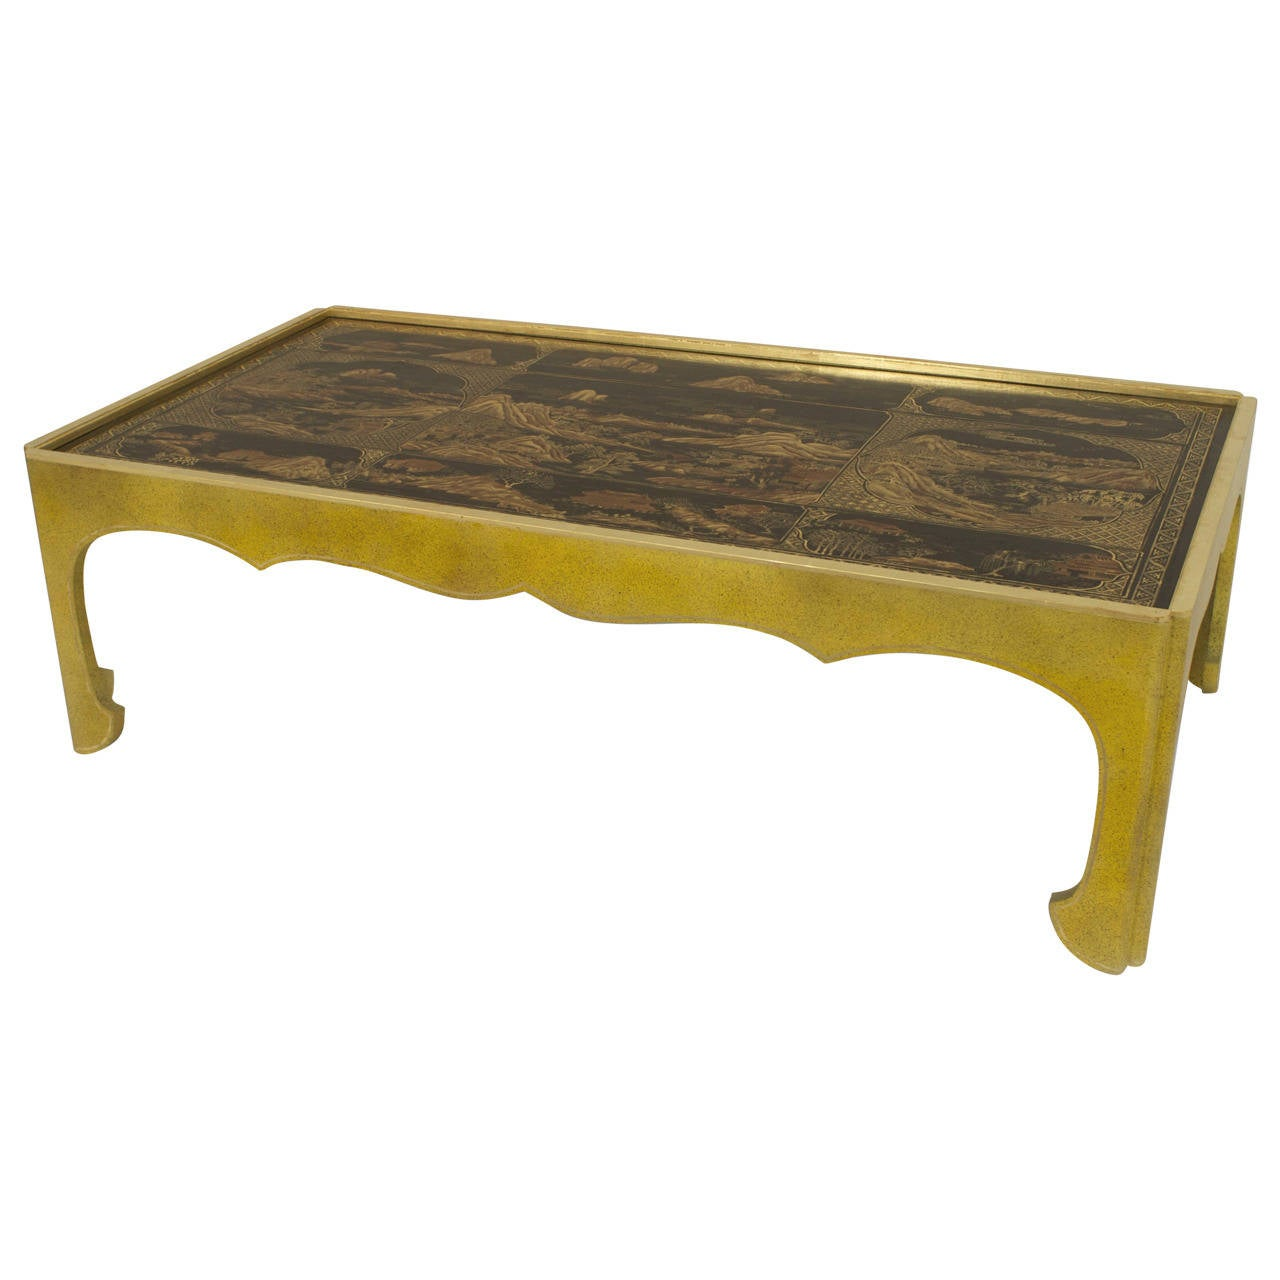 Modern Parcel Gilt Celedon Coffee Table With Inset Chinoiserie Lacquer Top For Sale At 1stdibs